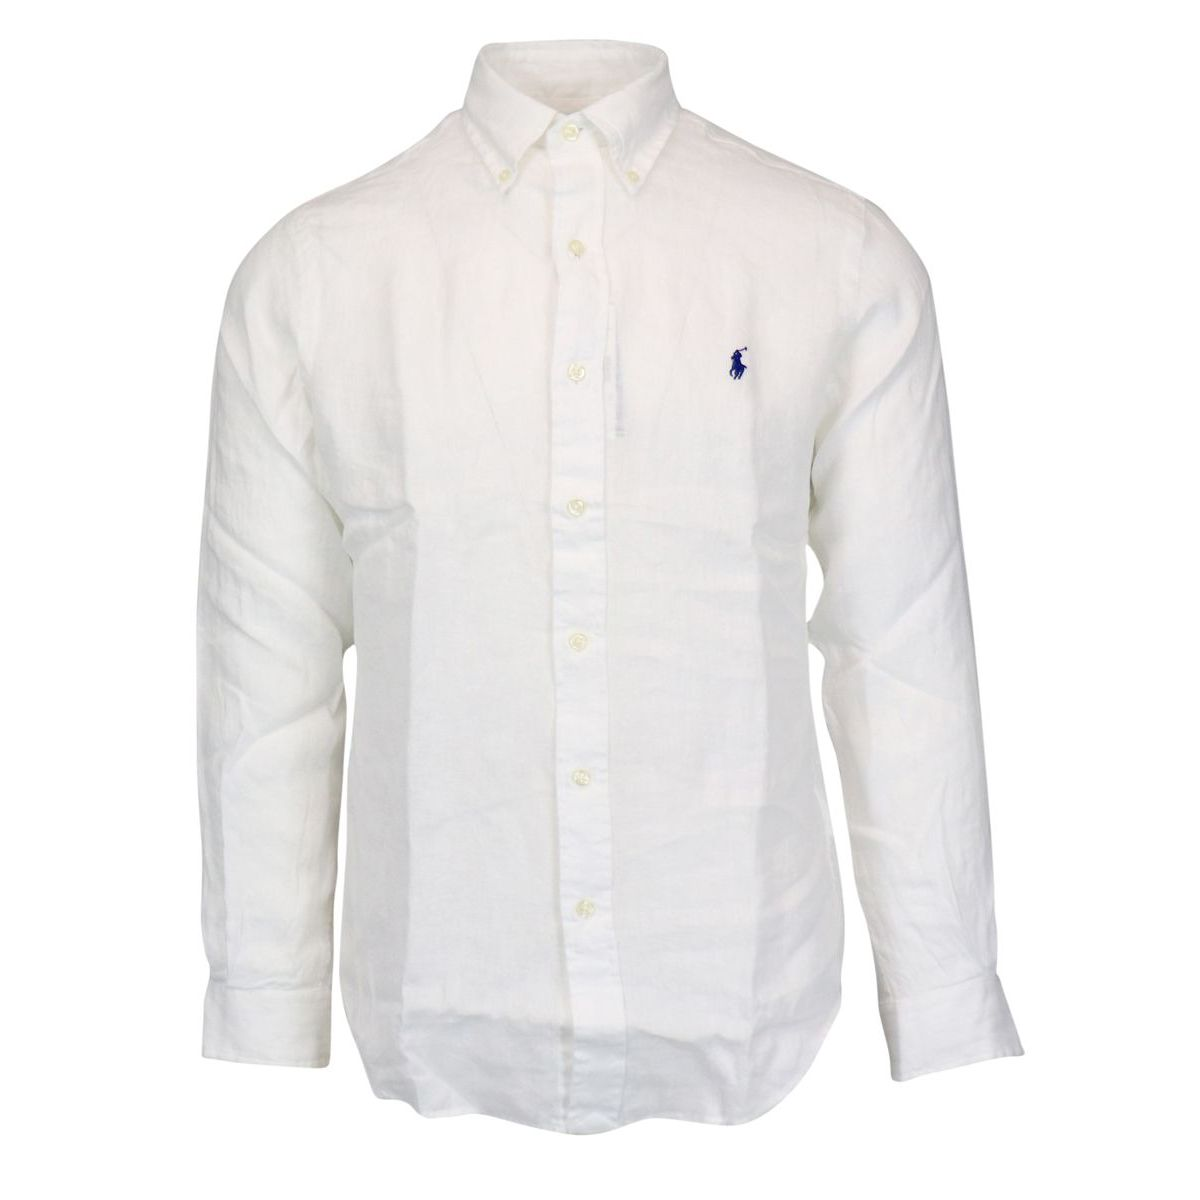 Custom-fit button-down linen shirt White Polo Ralph Lauren